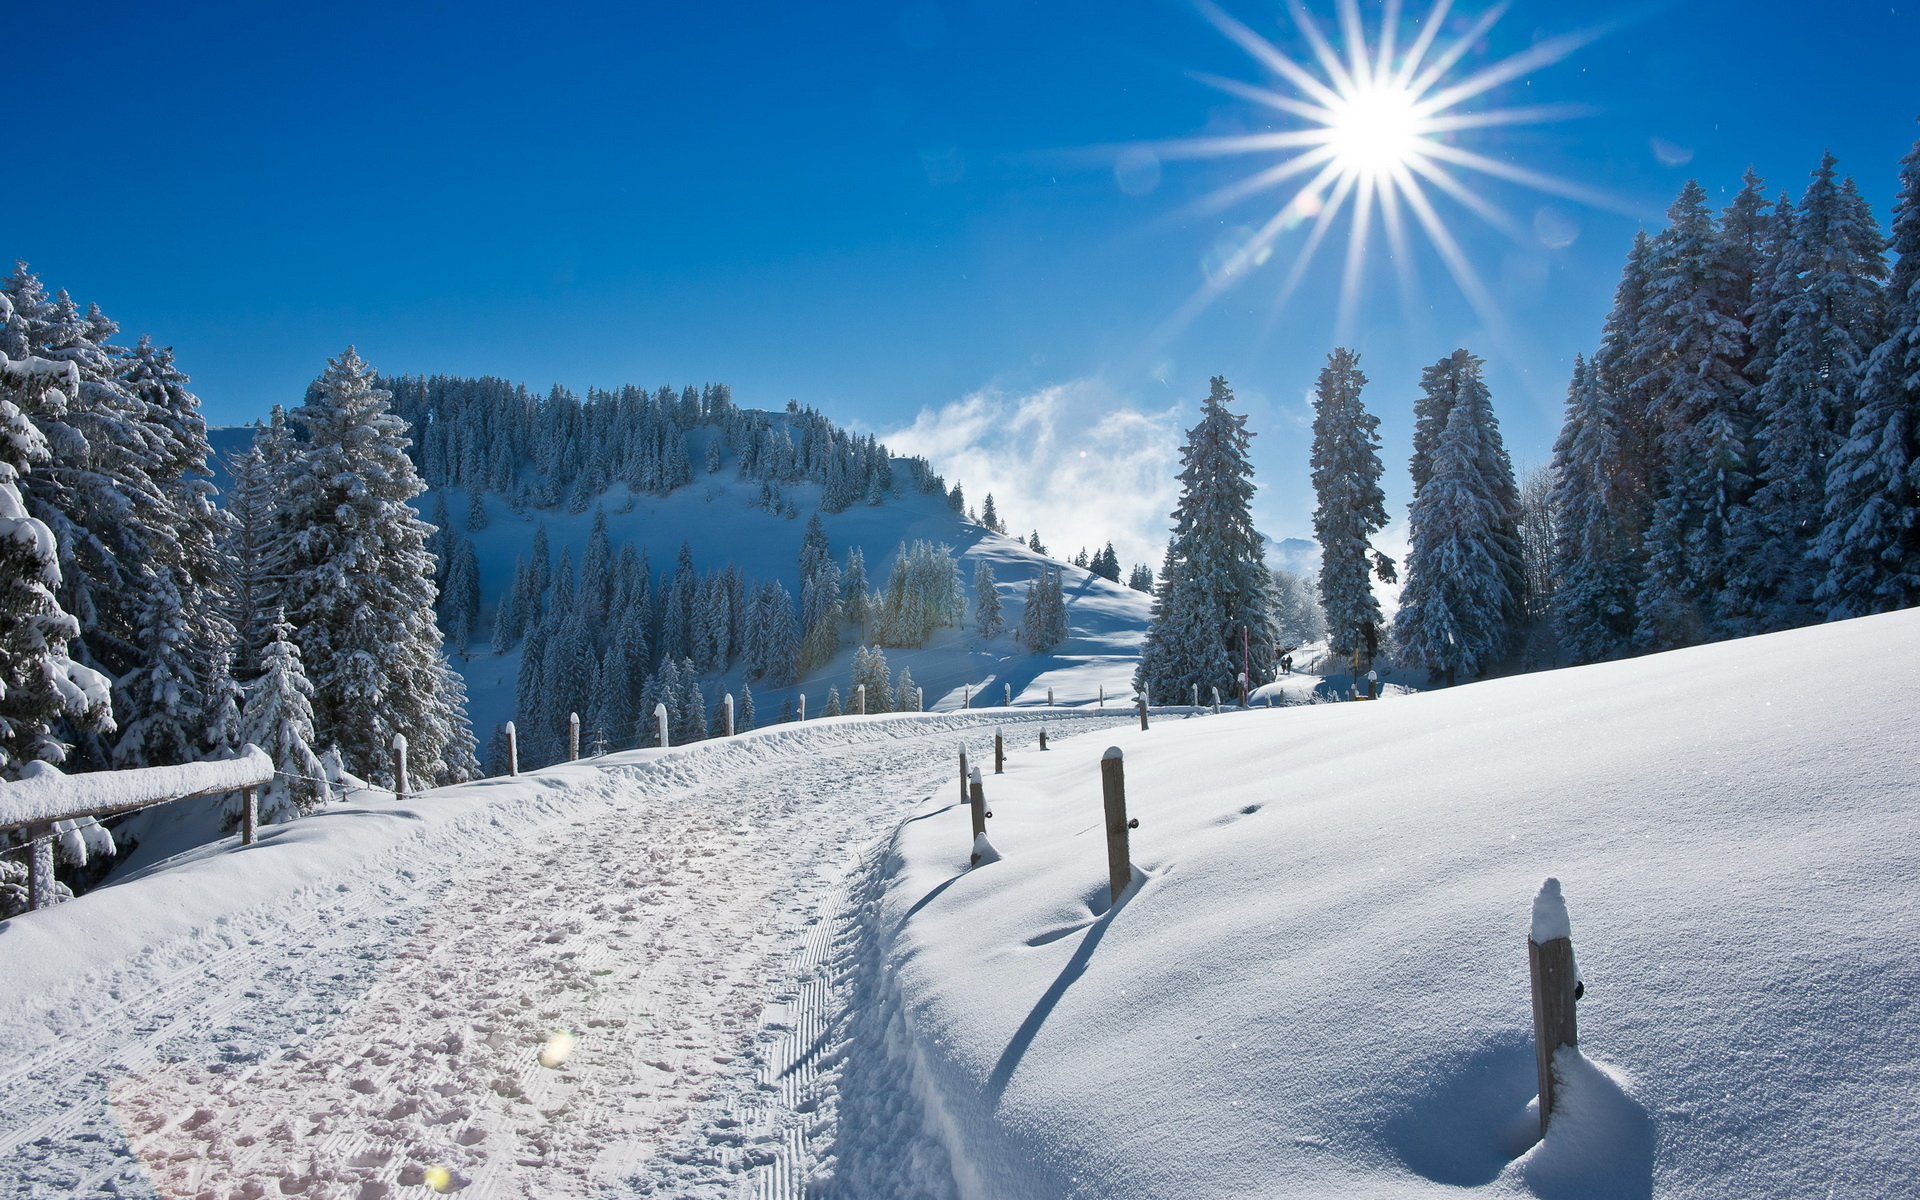 Winter Snow Road Hd Wallpaper Download wallpapers page 1920x1200